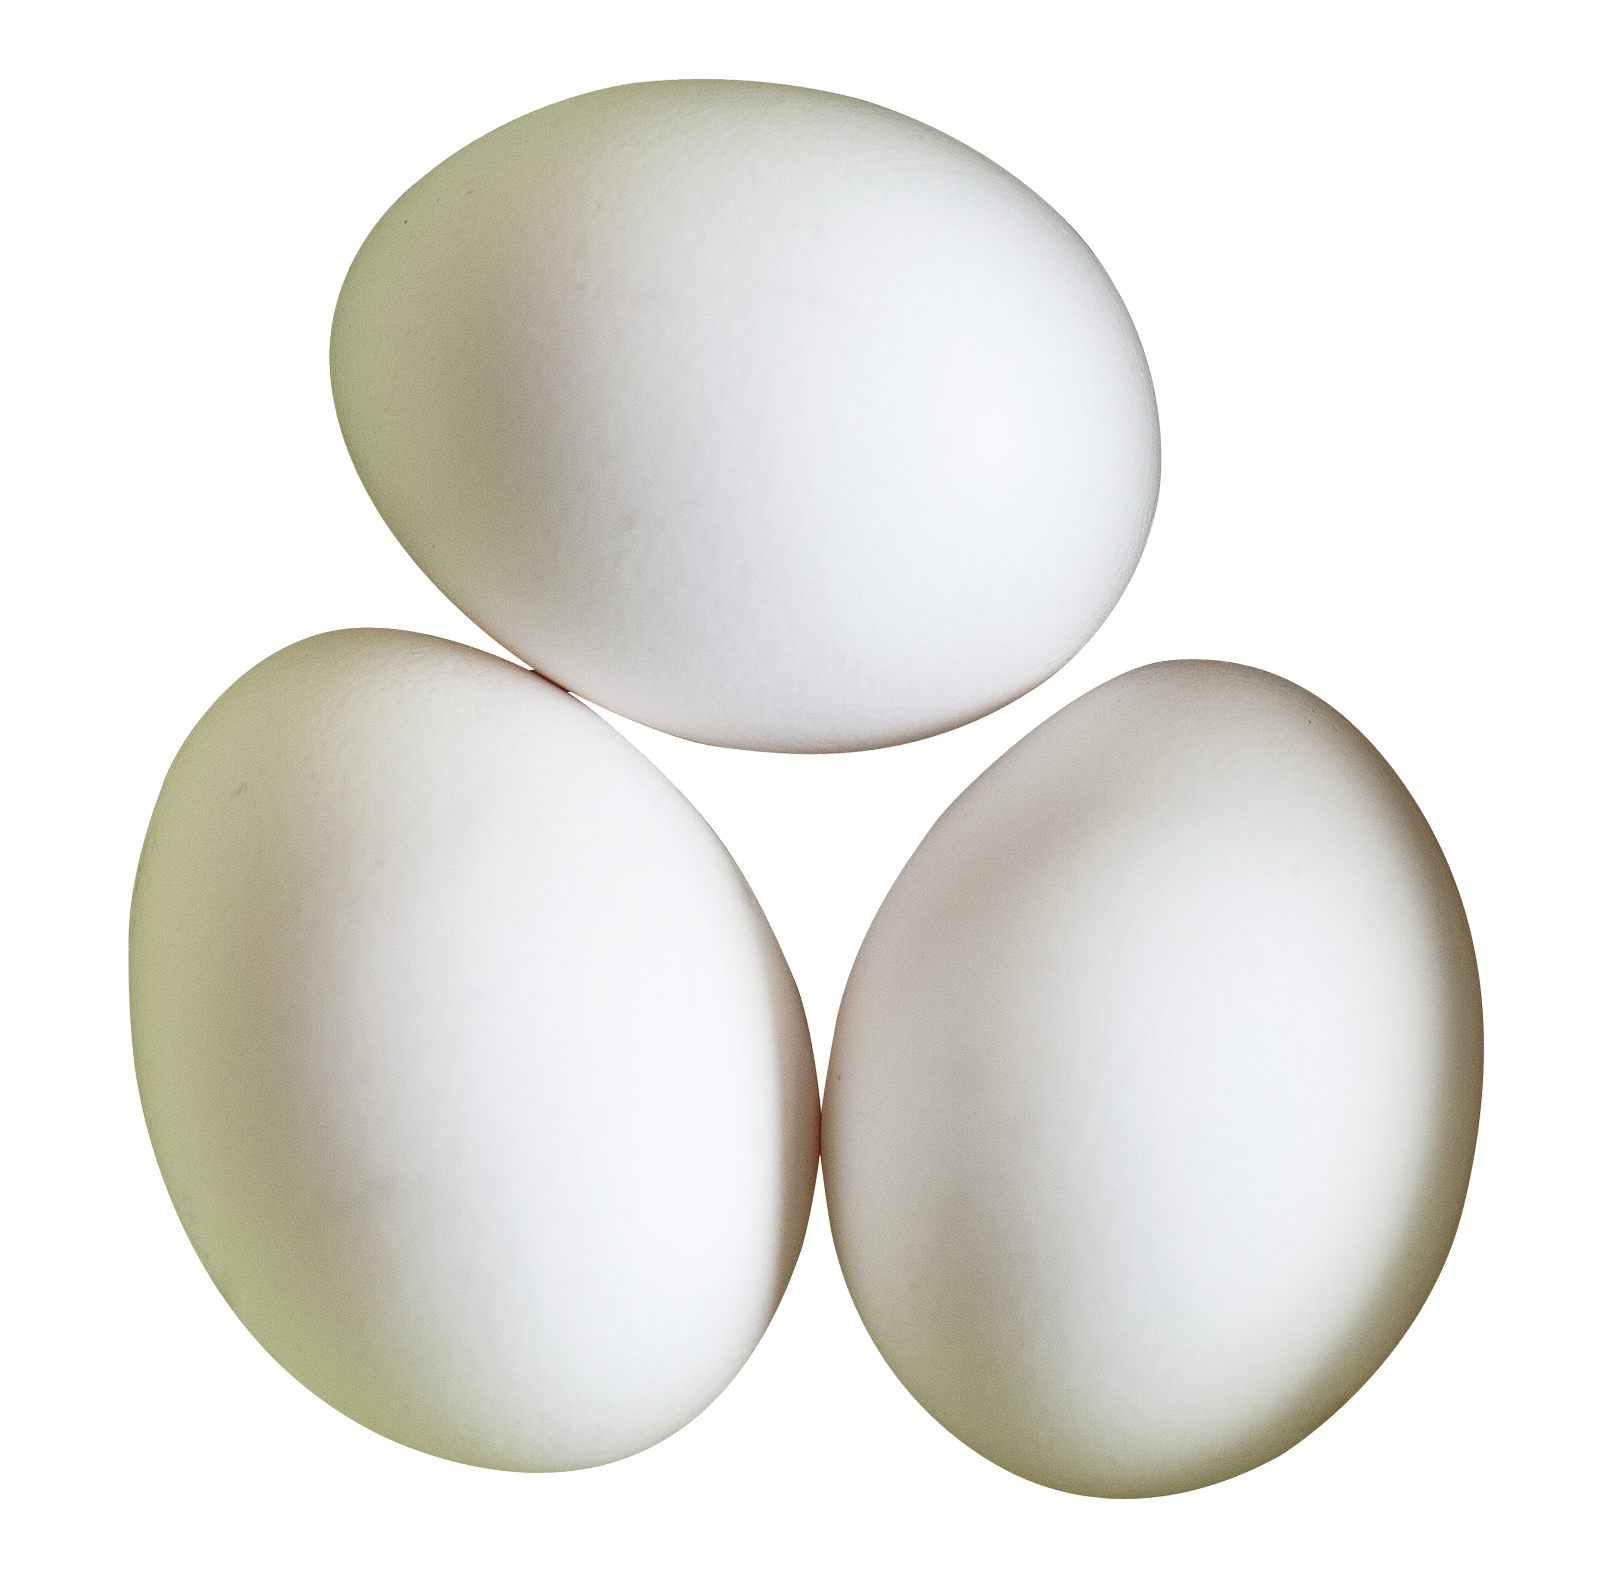 image royalty free library Transparent eggs. Egg white png download